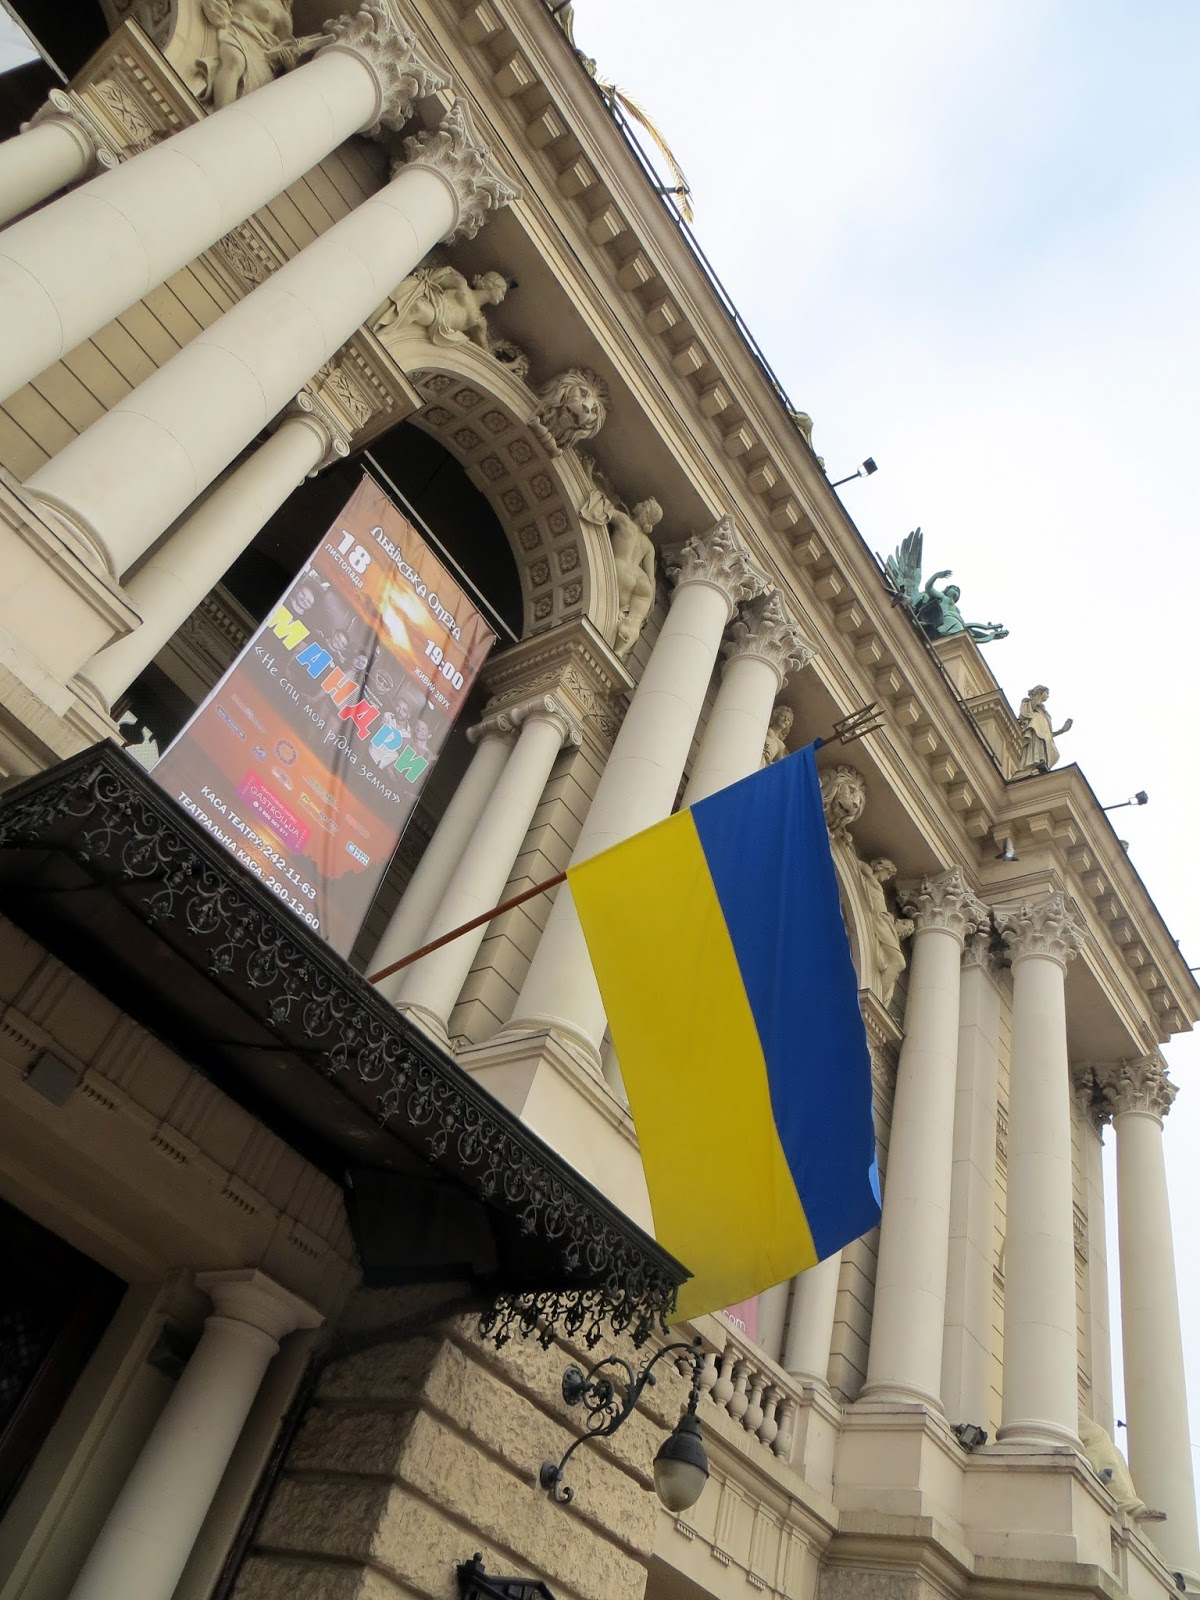 One day in Lviv